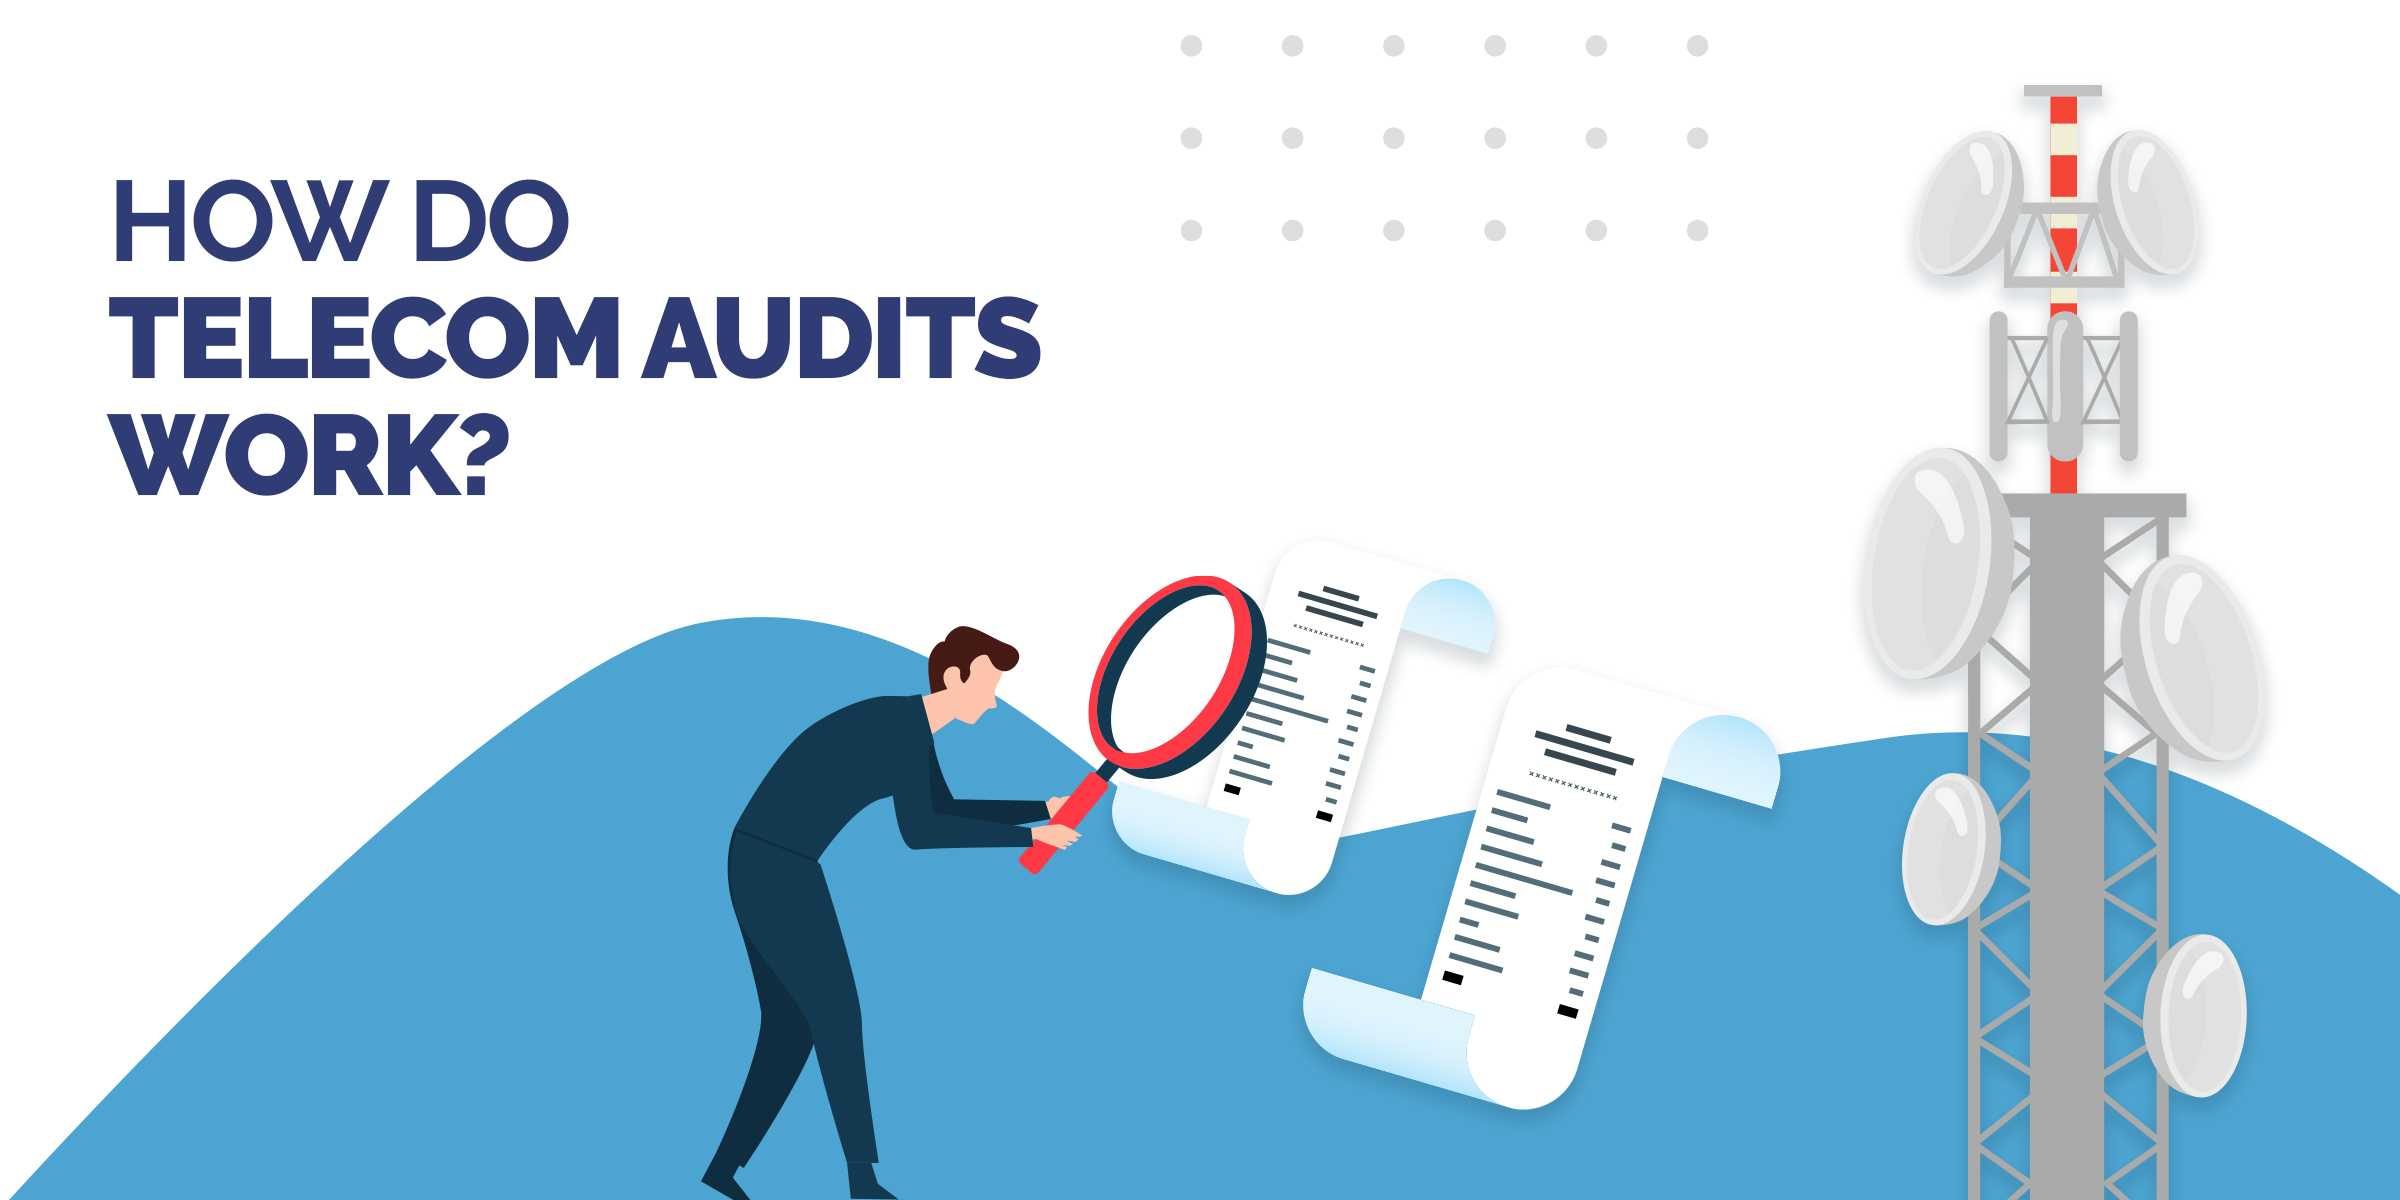 How Do Telecom Audits Work?